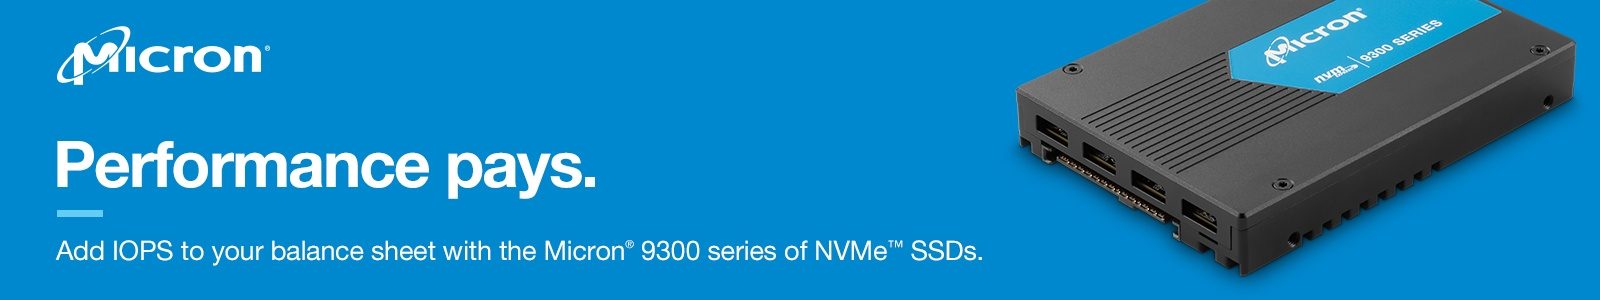 Oltp On Microsoft Sql Server With The Micron 9300 Pro Nvme Ssd 2 5x Performance With Fewer Drives